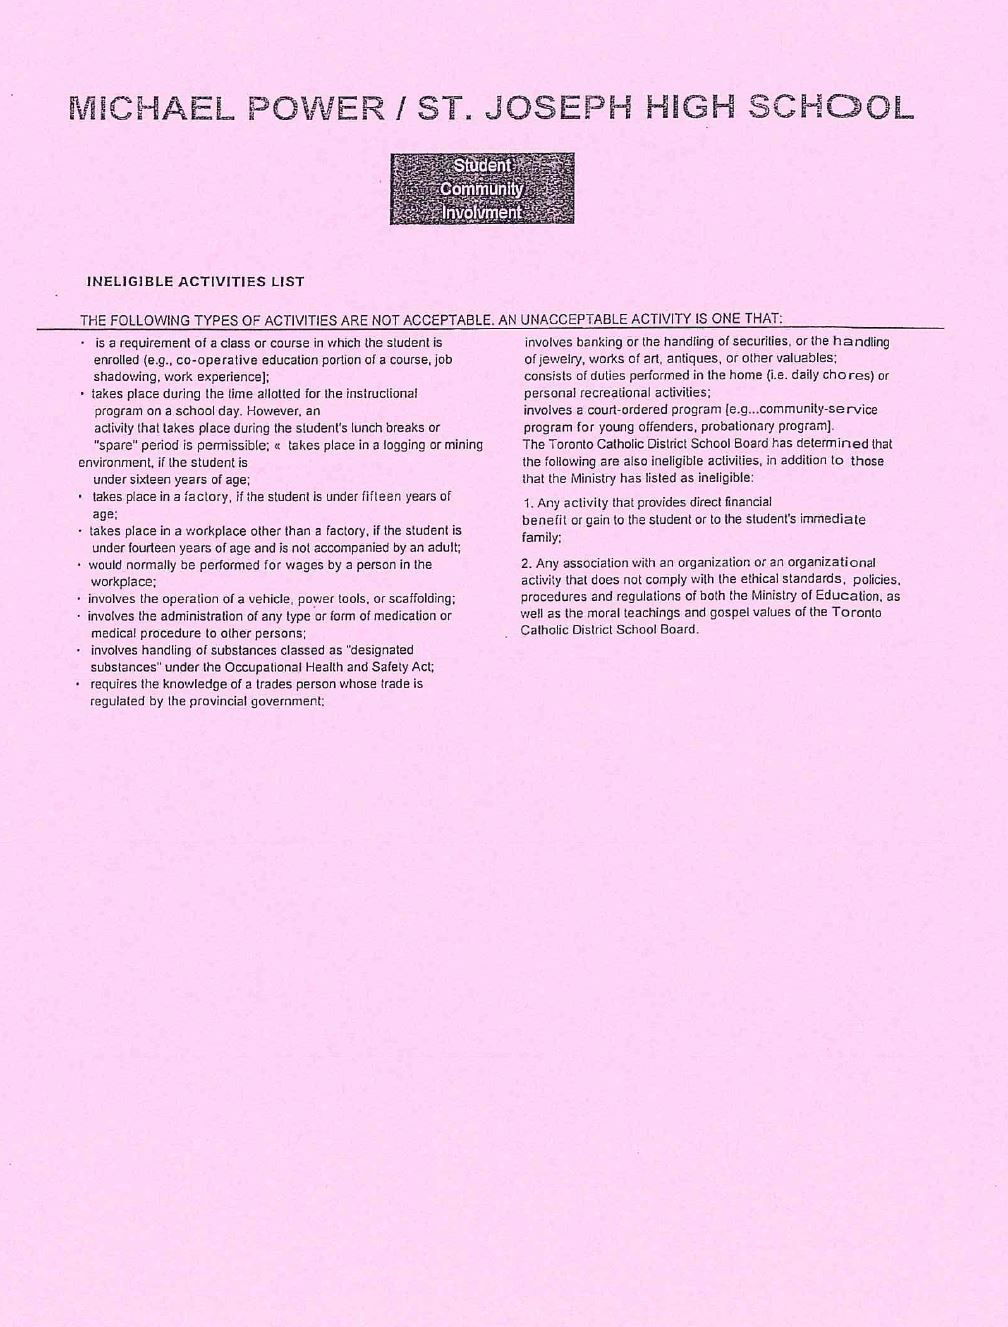 MPSJ Community Involvement Forms - Pink pg2.JPG